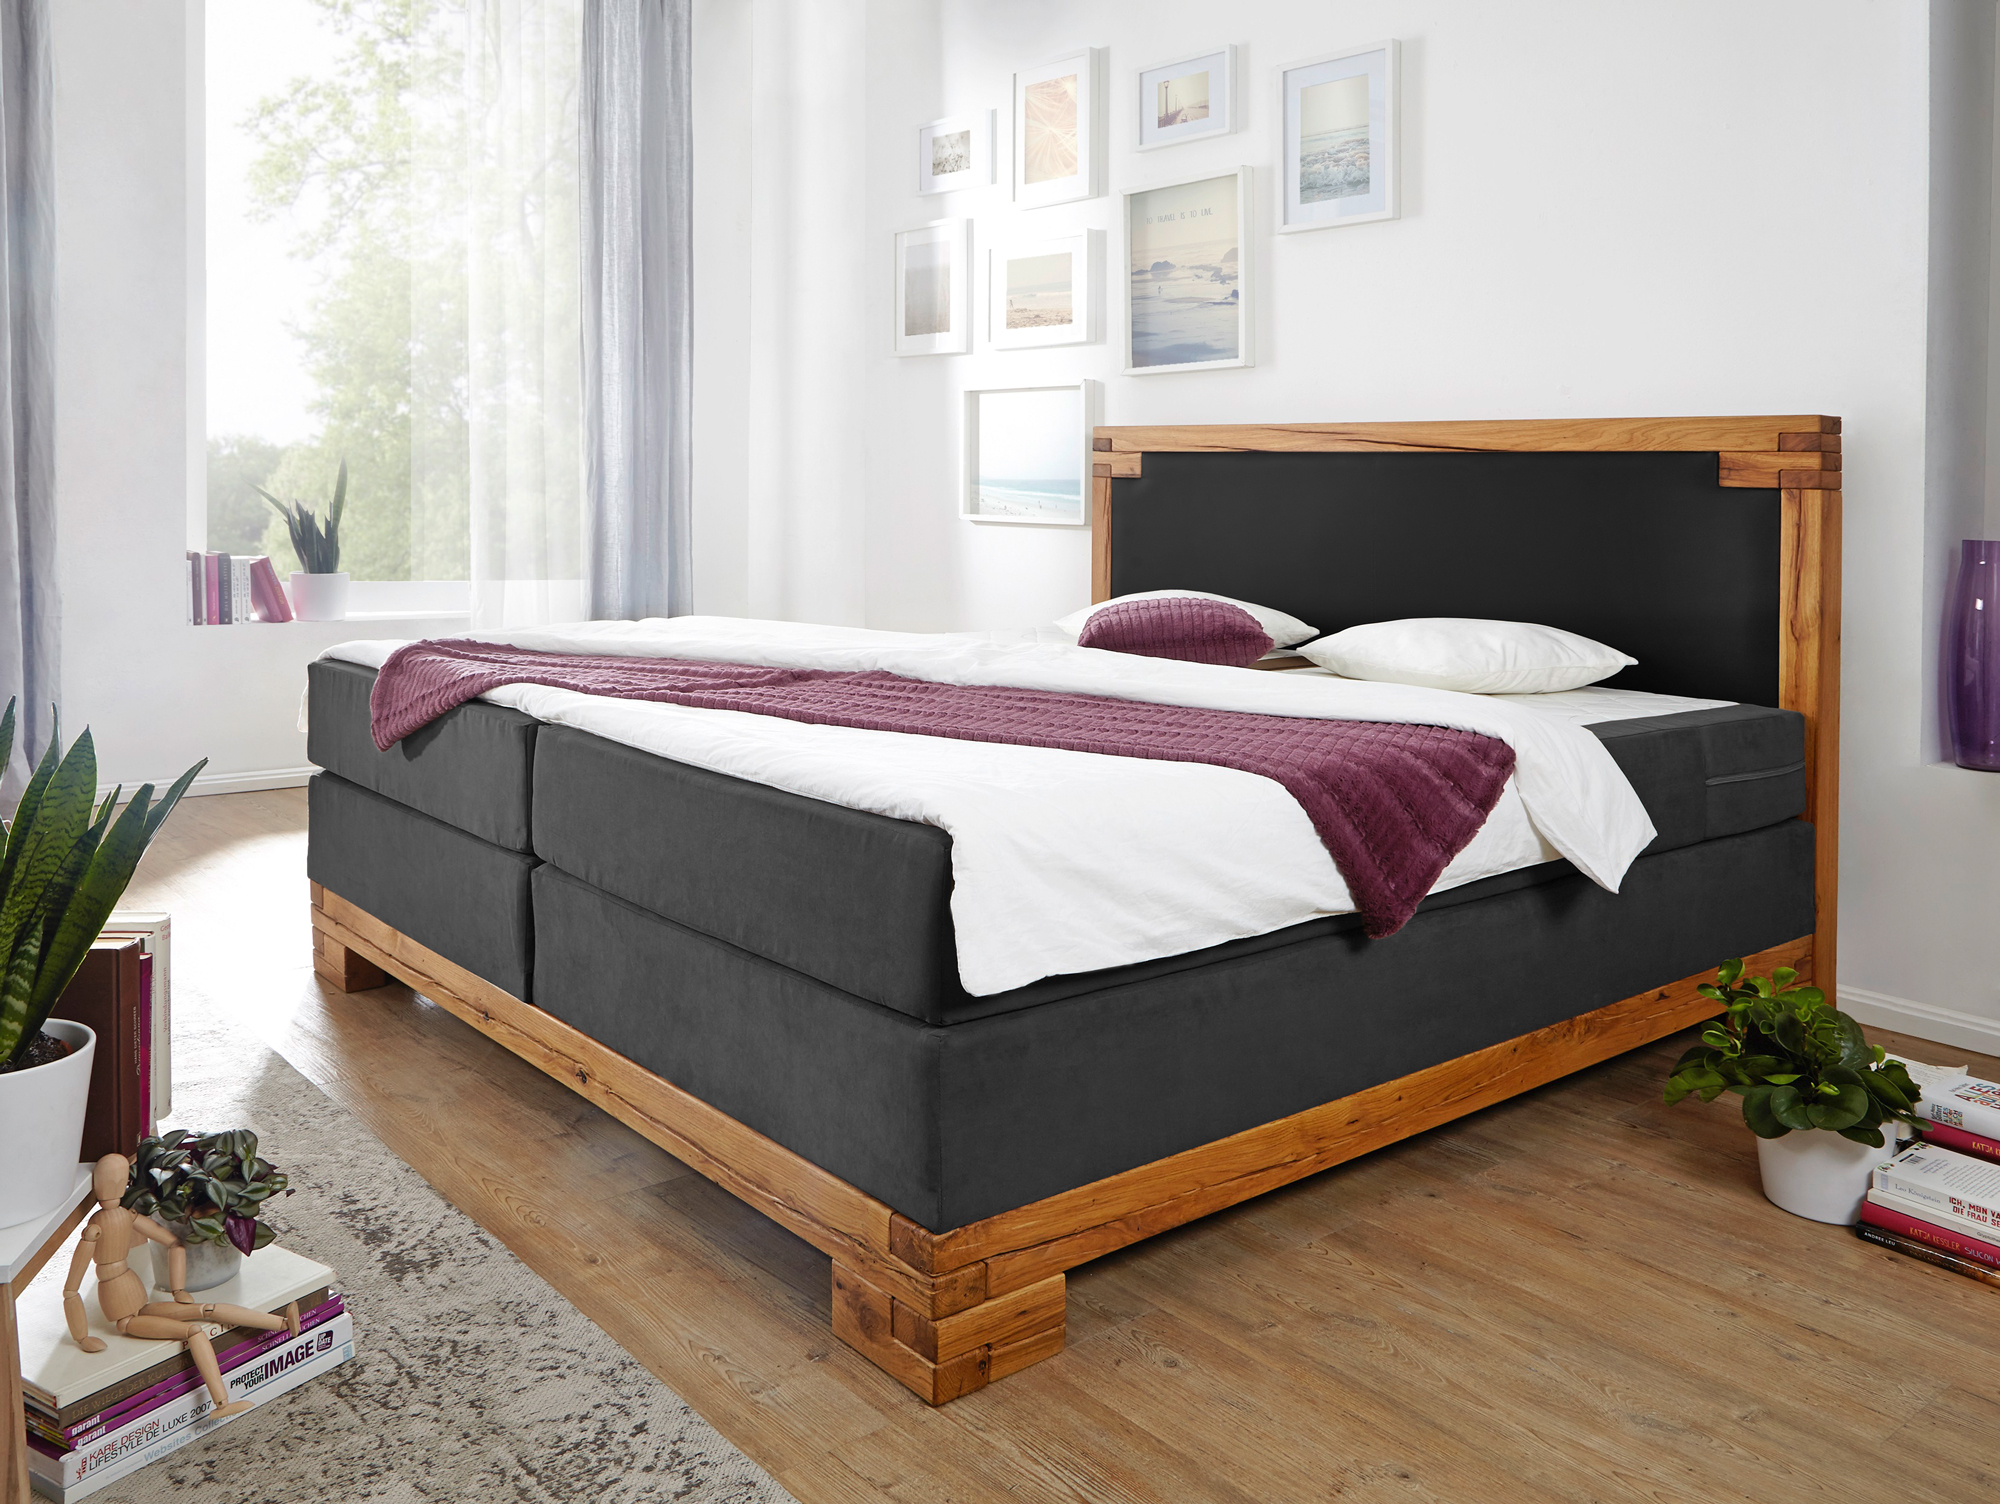 bellamie boxspringbett mit massivem holzrahmen 160 x 200 cm. Black Bedroom Furniture Sets. Home Design Ideas